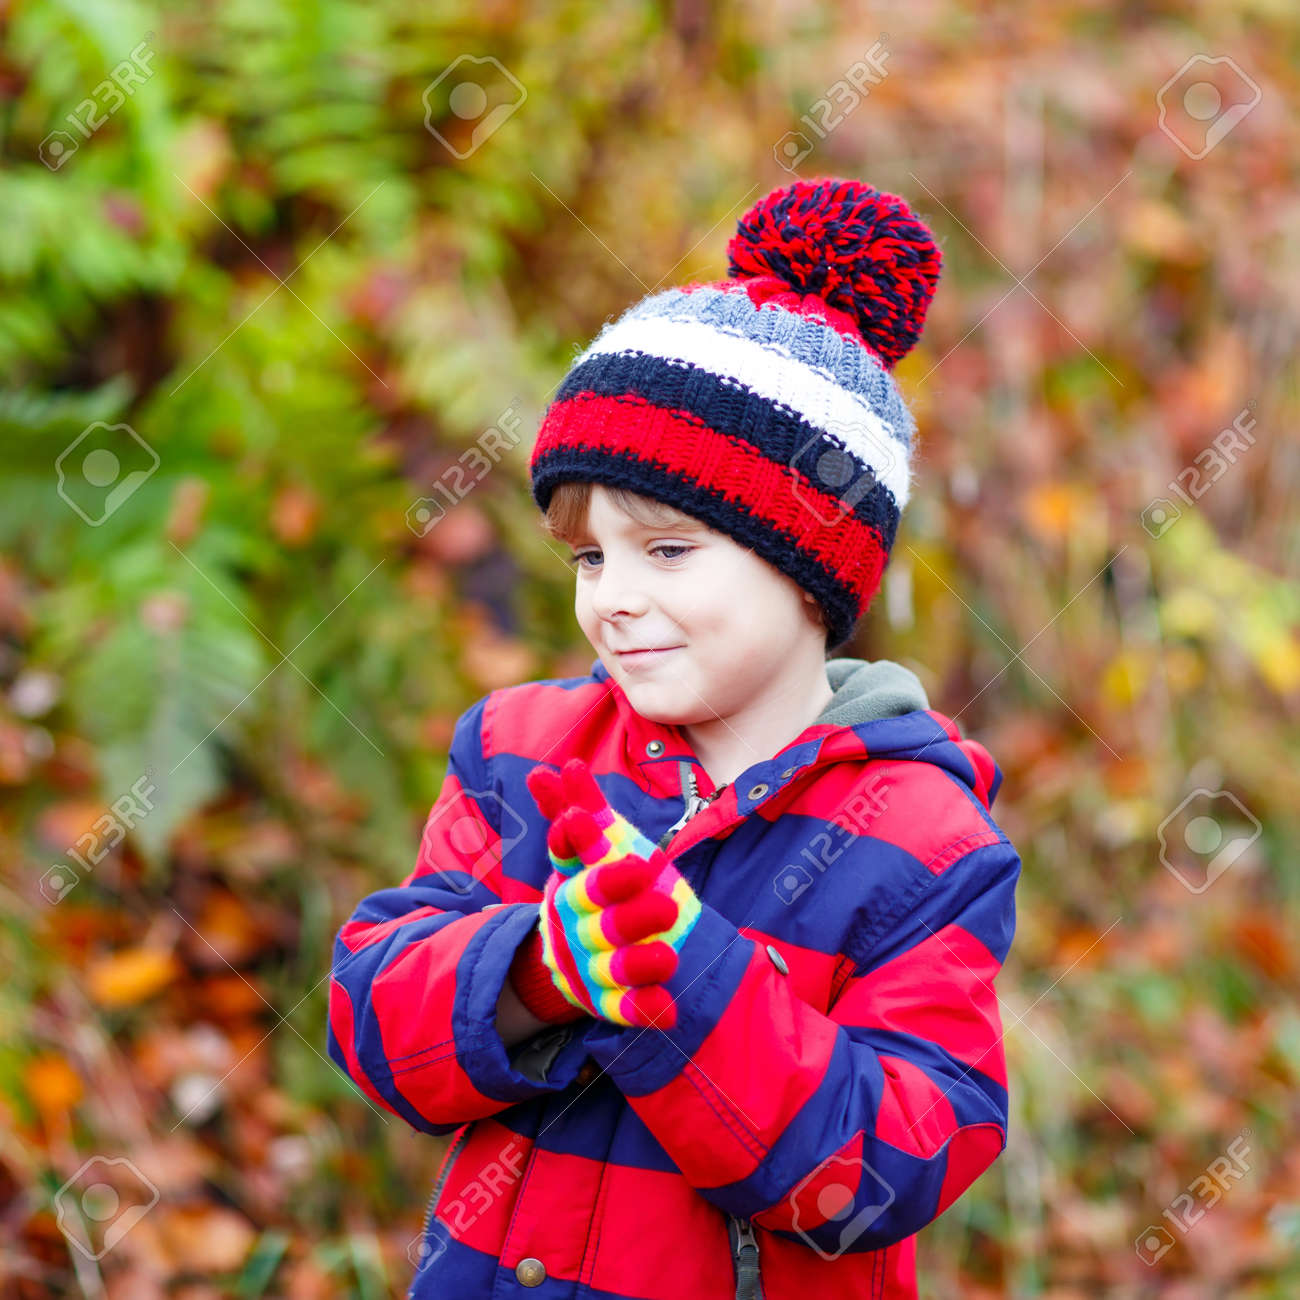 8d3af003e36 ... day. With hat and gloves. Portrait of happy cute little kid boy with  autumn leaves background in colorful clothing. Funny